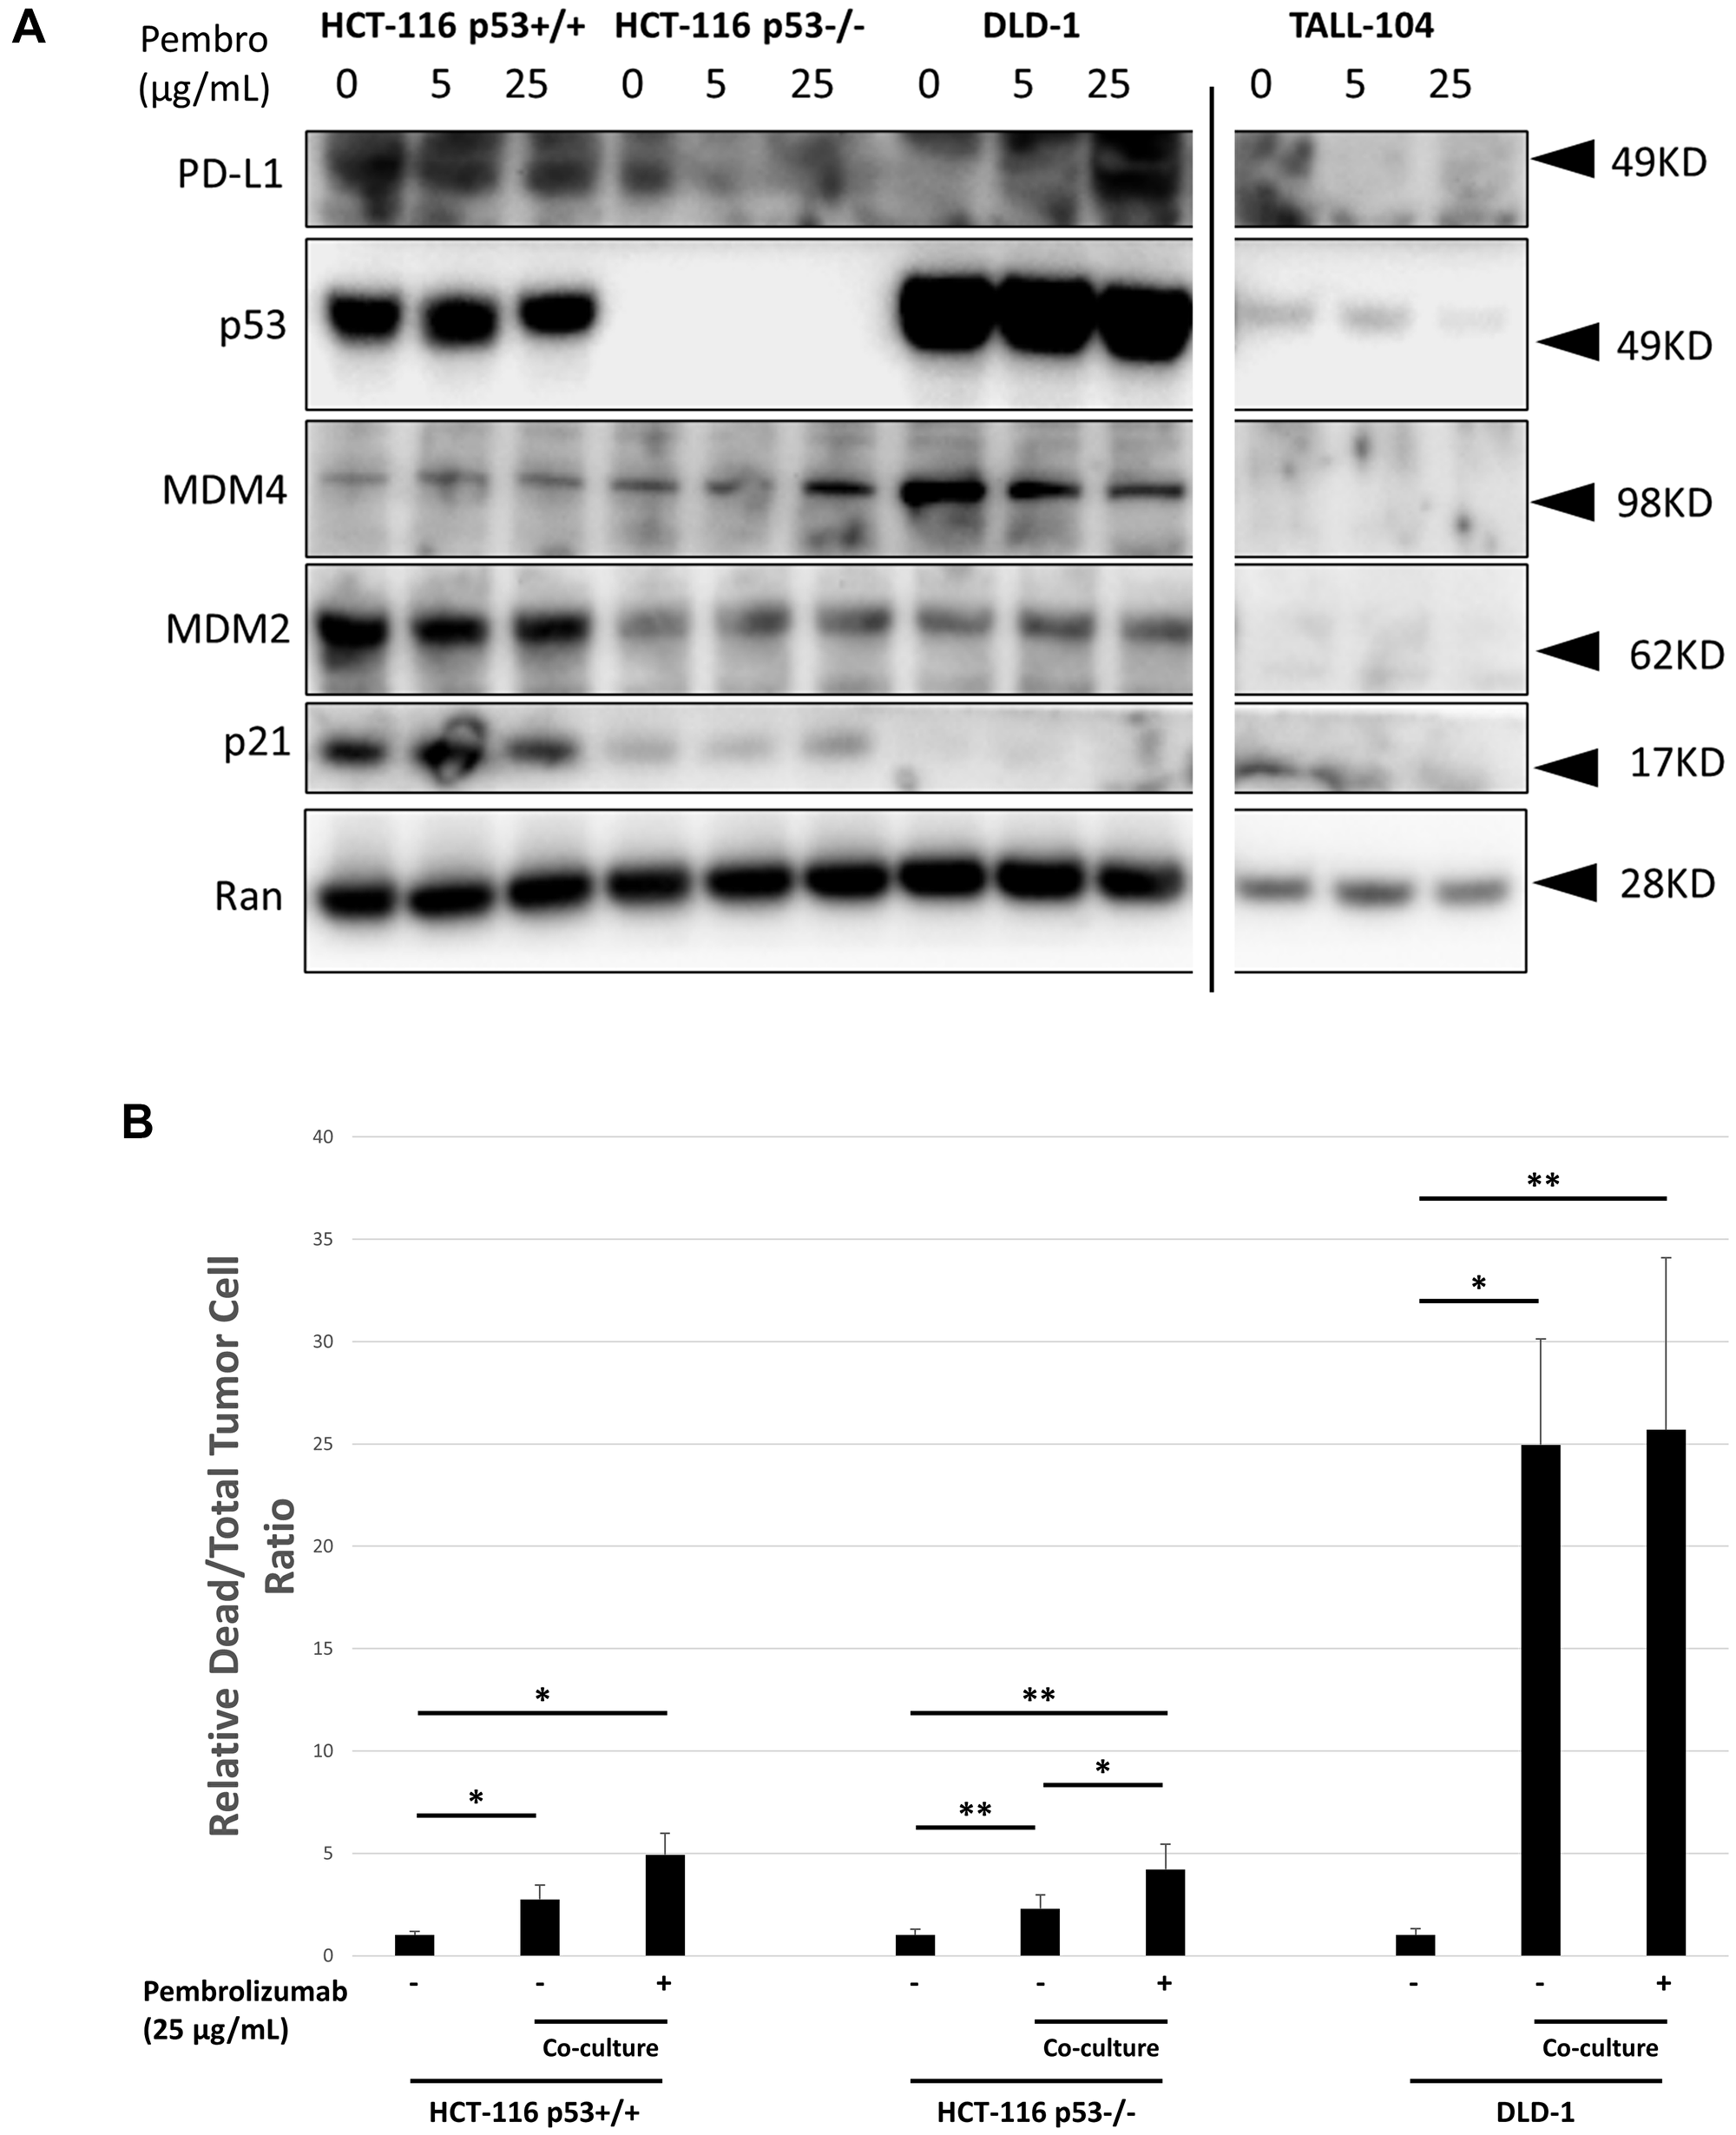 In vitro characterization of human CRC cell line response to co-culture with TALL-104 human CD8+ T-cells and anti-PD-1 therapy.